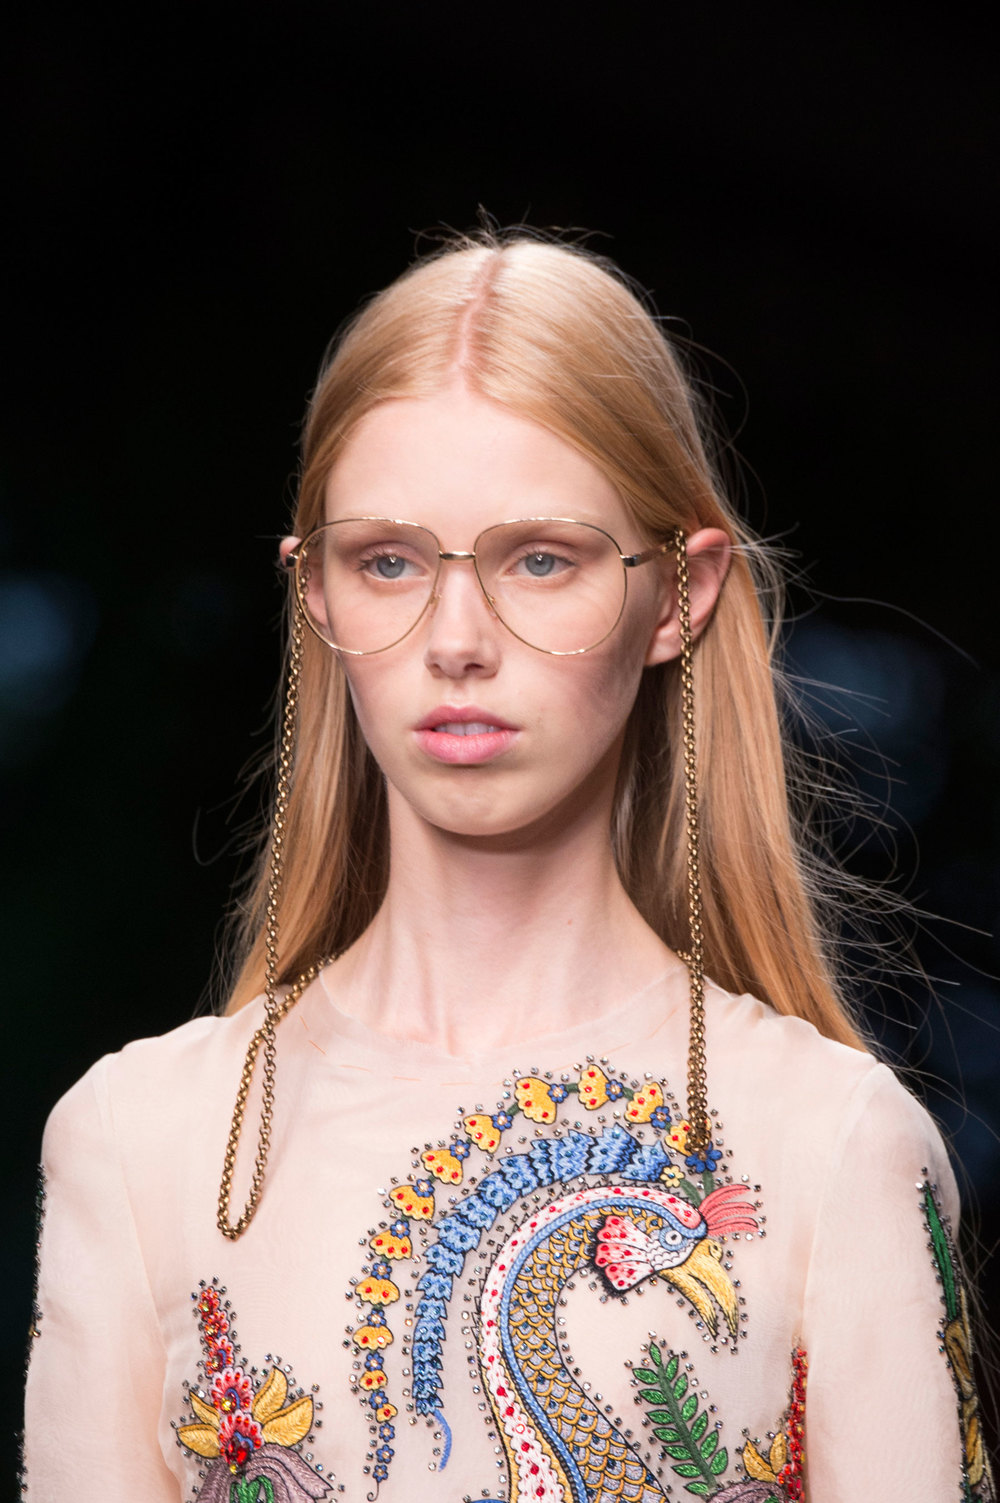 gucci-beauty-spring-2016-fashion-show-the-impression-037.jpg